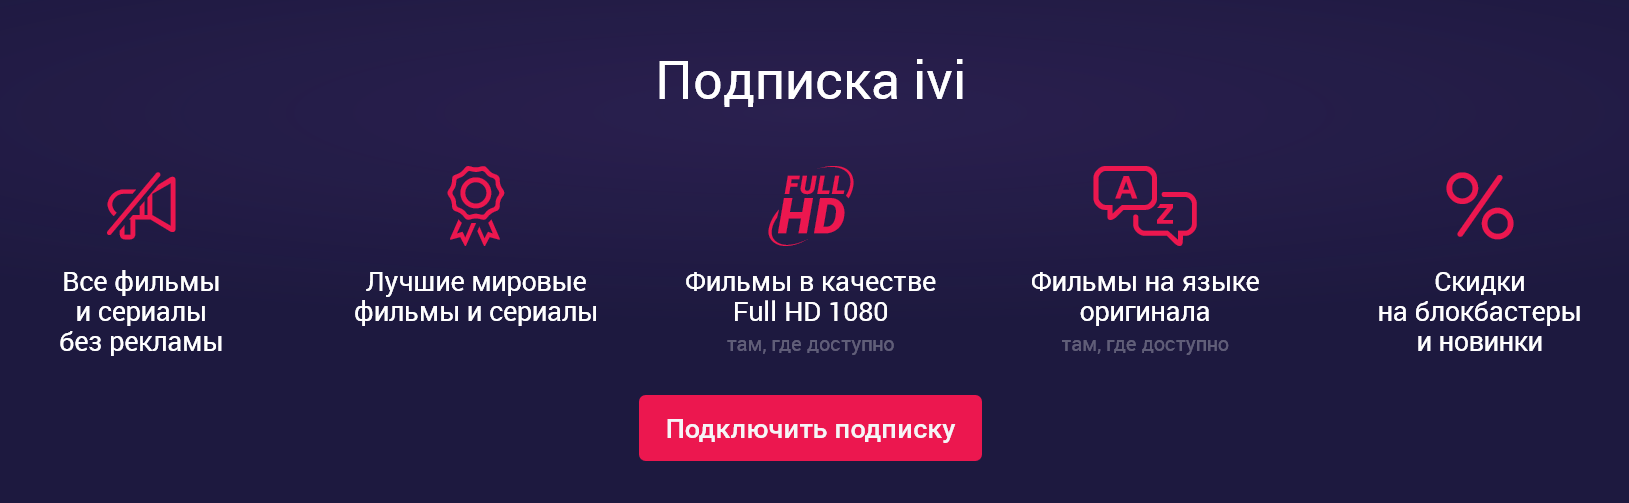 ♐ to 28.03.2021⌛ NEW✅ IVI.RU SUBSCRIPTION БE3 ПРОМОКОДА